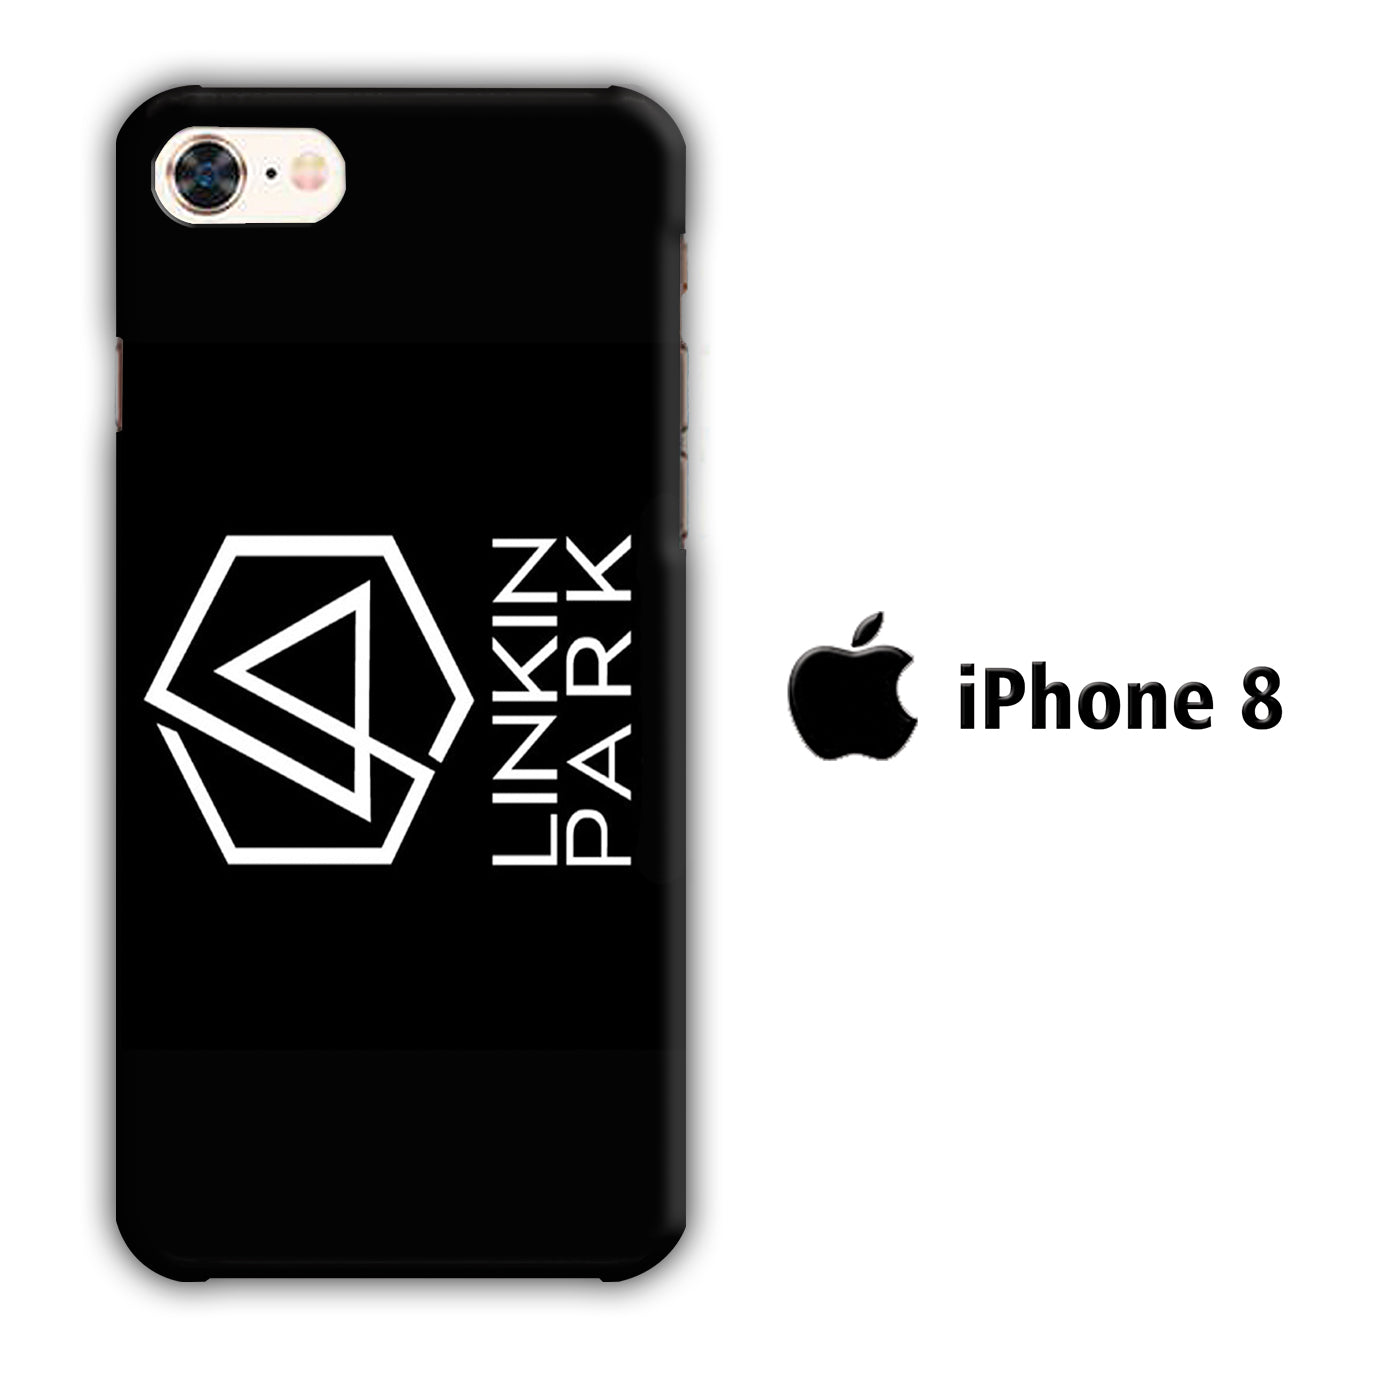 Linkin Park LP 005 iPhone 8 3D Case